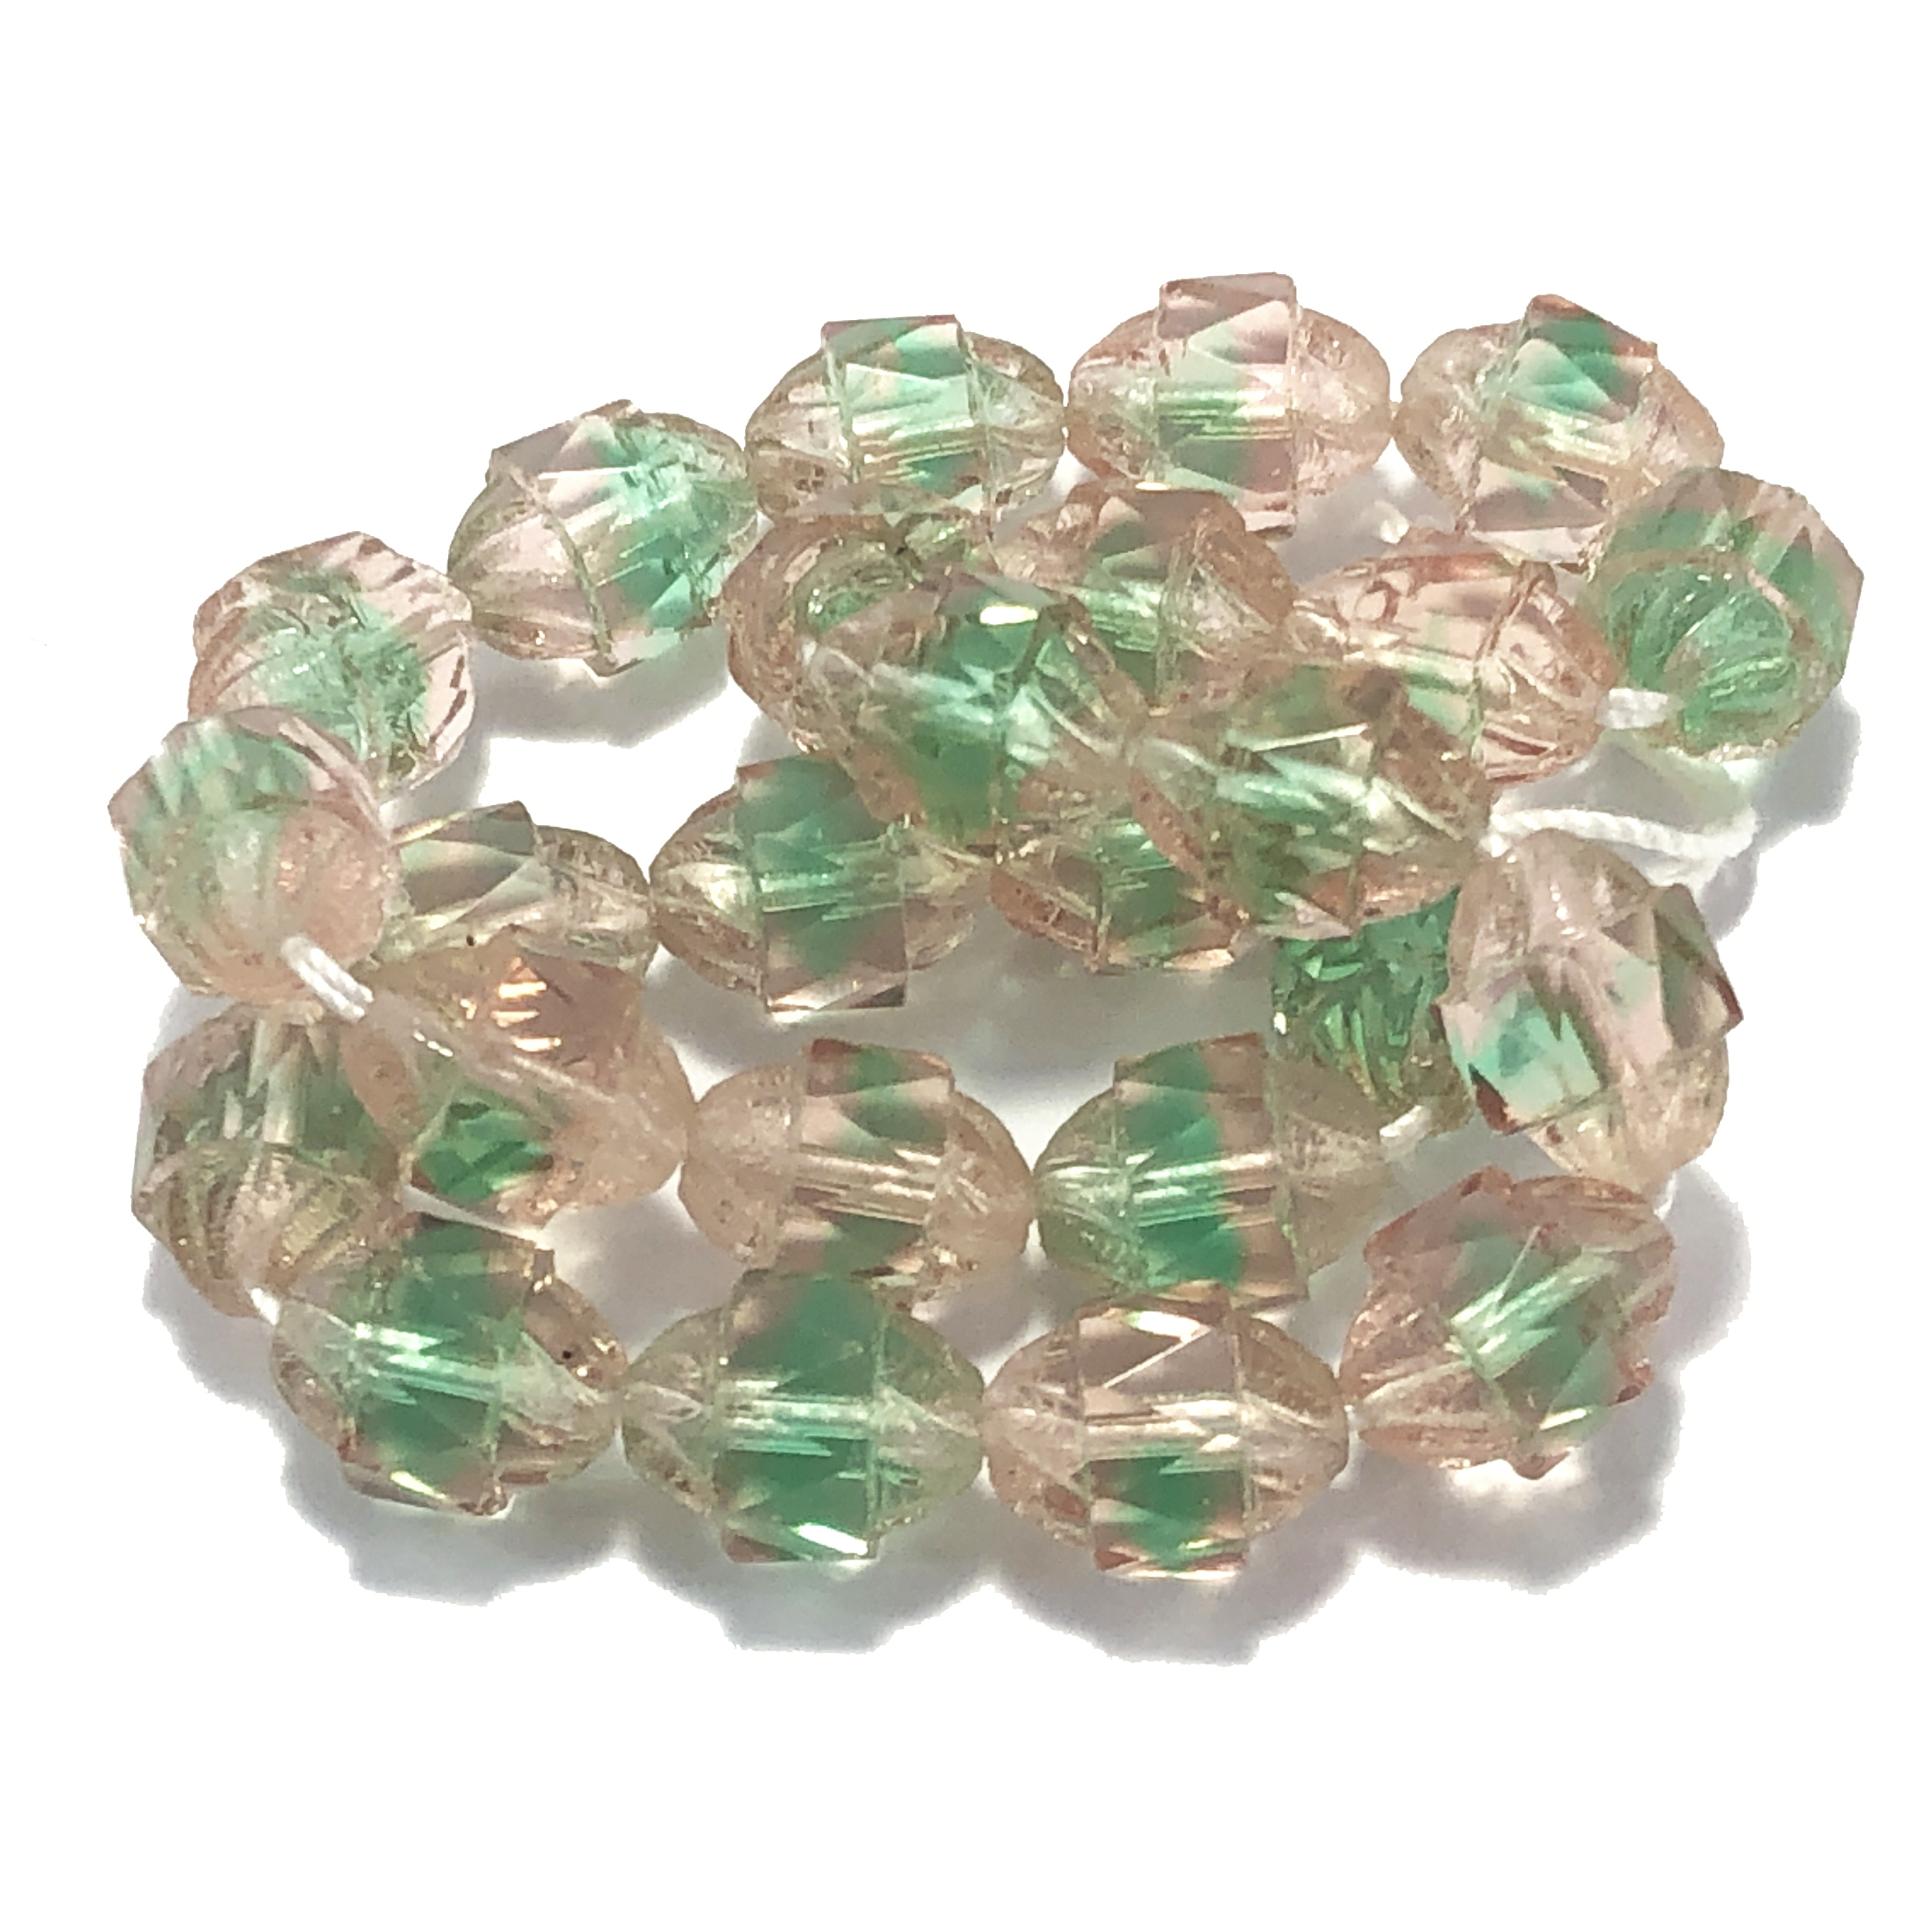 turbine beads, Czech glass beads, saucer beads, Czech glass, oval beads, drilled, glass beads, lime green, peachy pink, US made, B'sue Boutiques, jewelry making, 10x8mm, faceted beads, vintage jewelry supplies, 09784